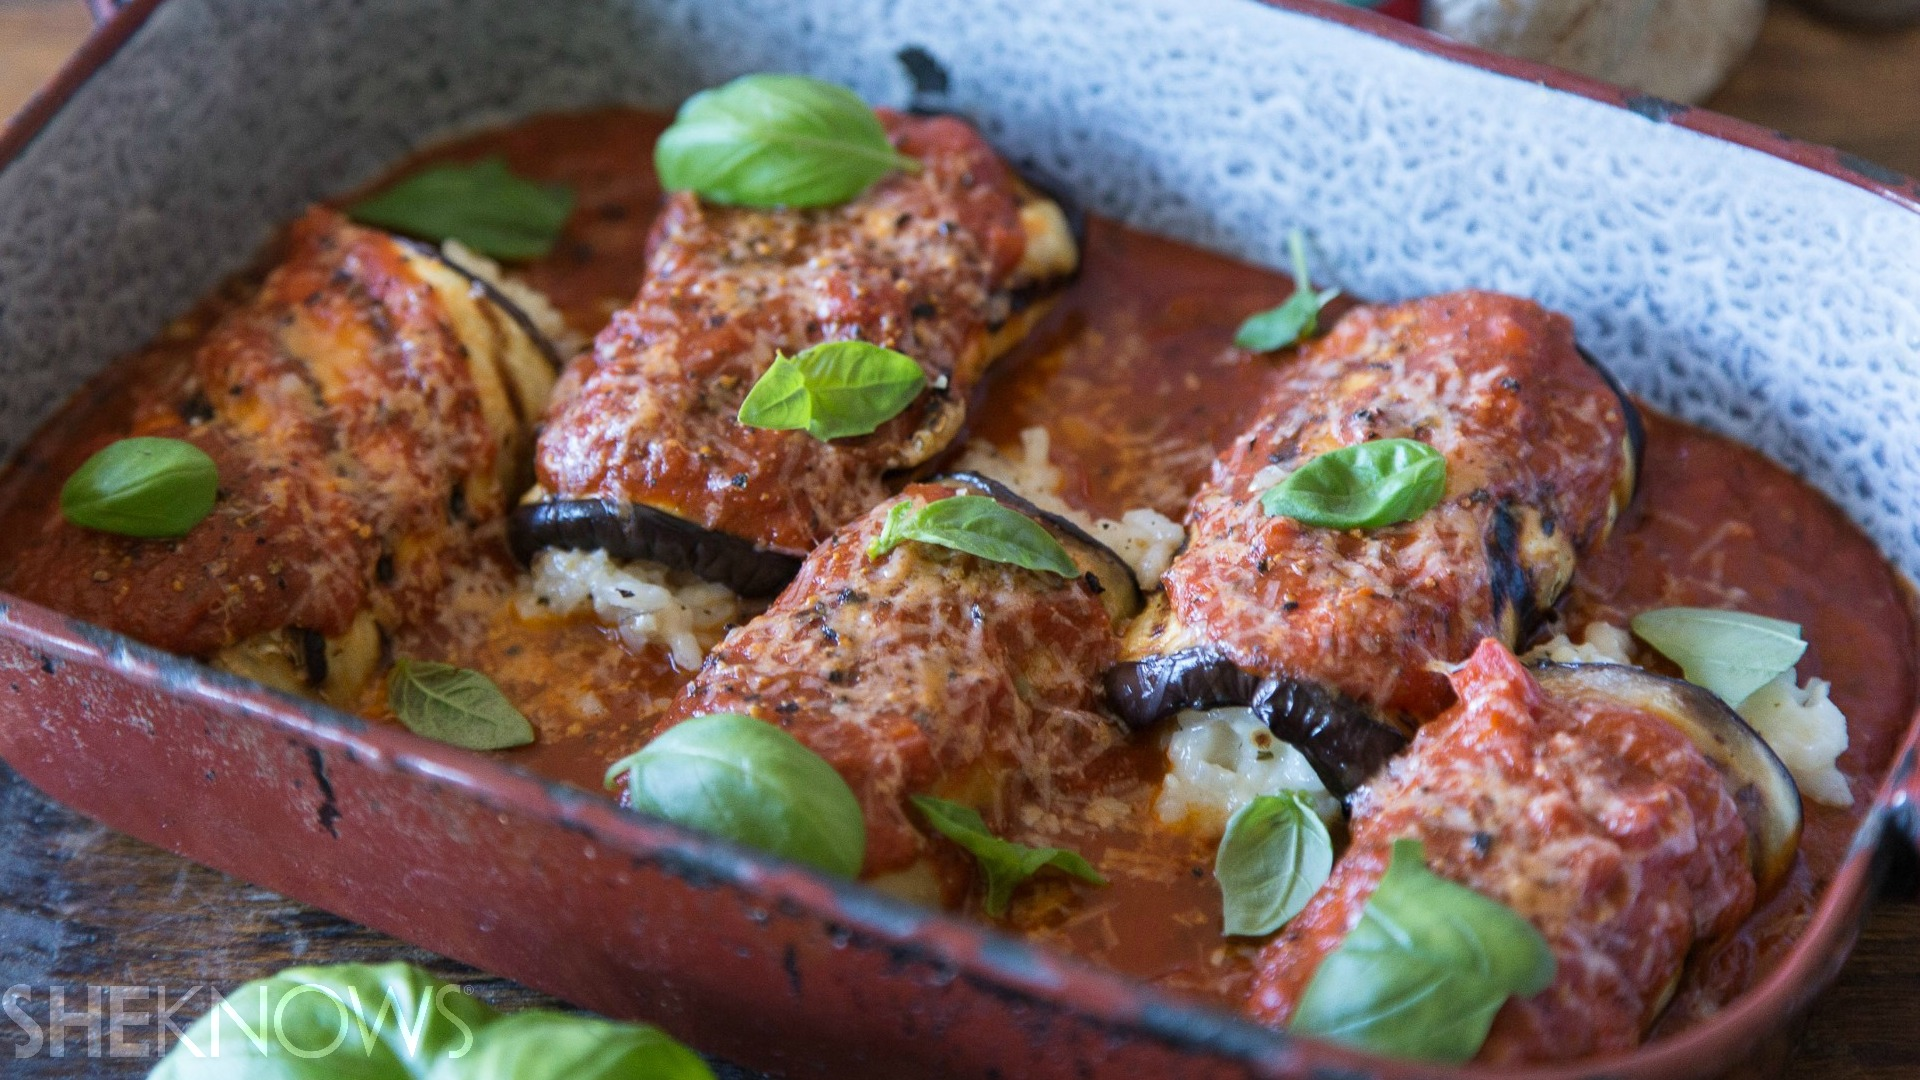 Eggplant rollatini with Parmesan risotto recipe